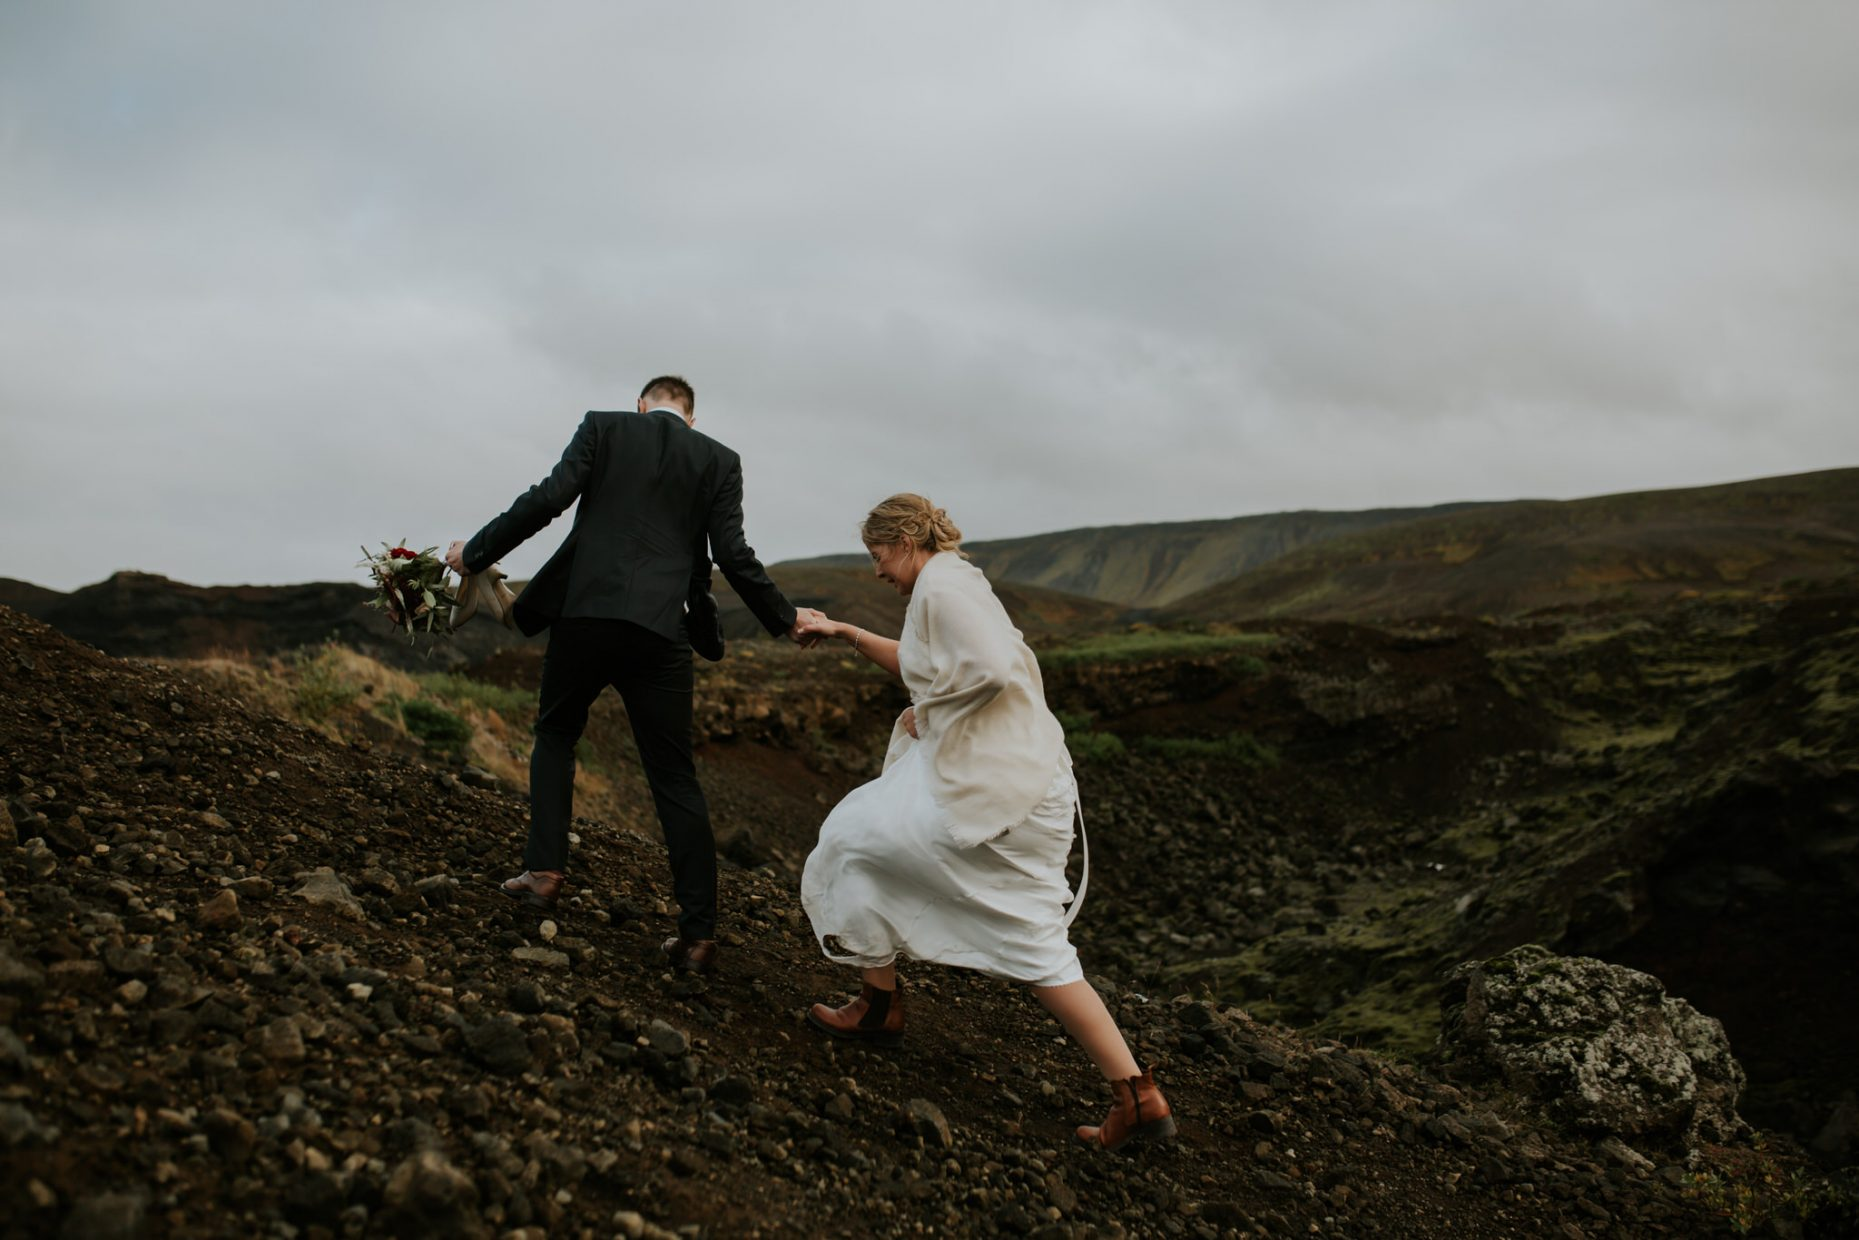 a groom hold a brides hand and helps her up a steep hill and holds her bouquet for her